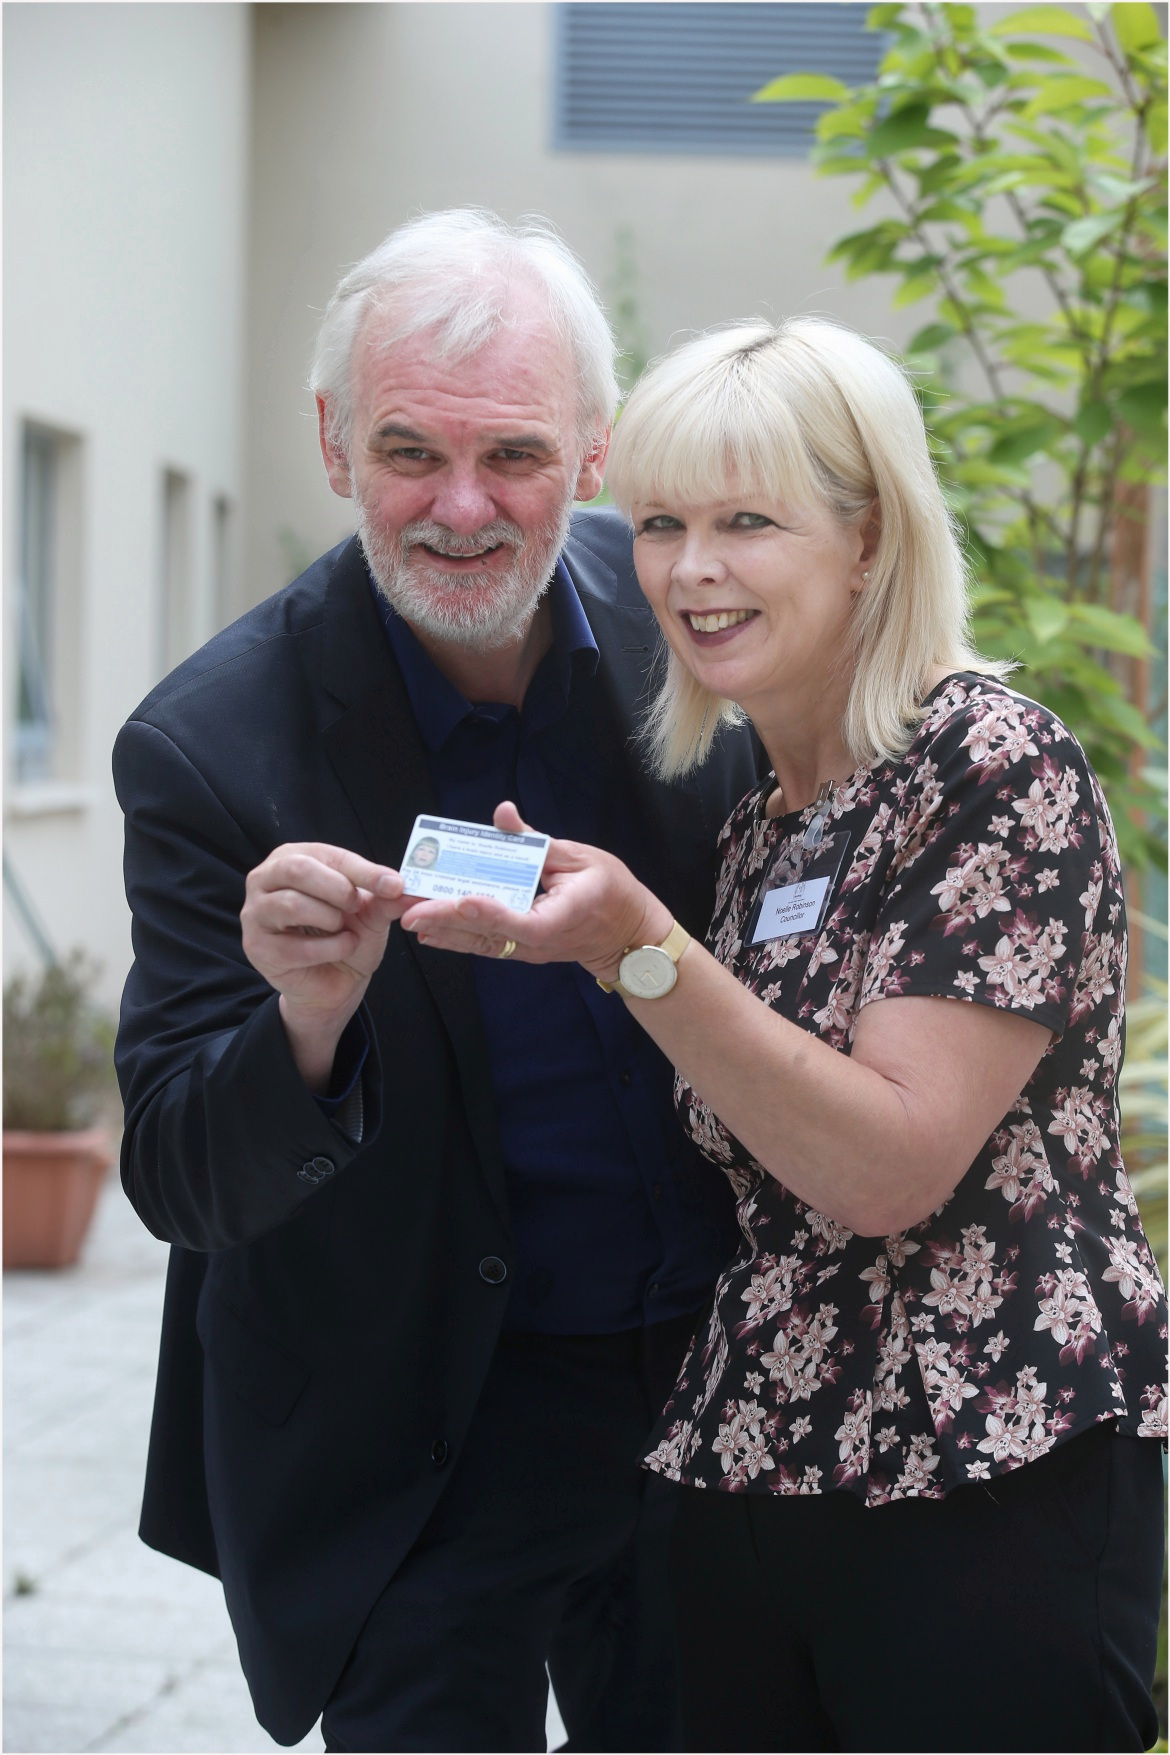 Noelle pictured with comedian Tim McGarry at the launch of the card in Northern Ireland.